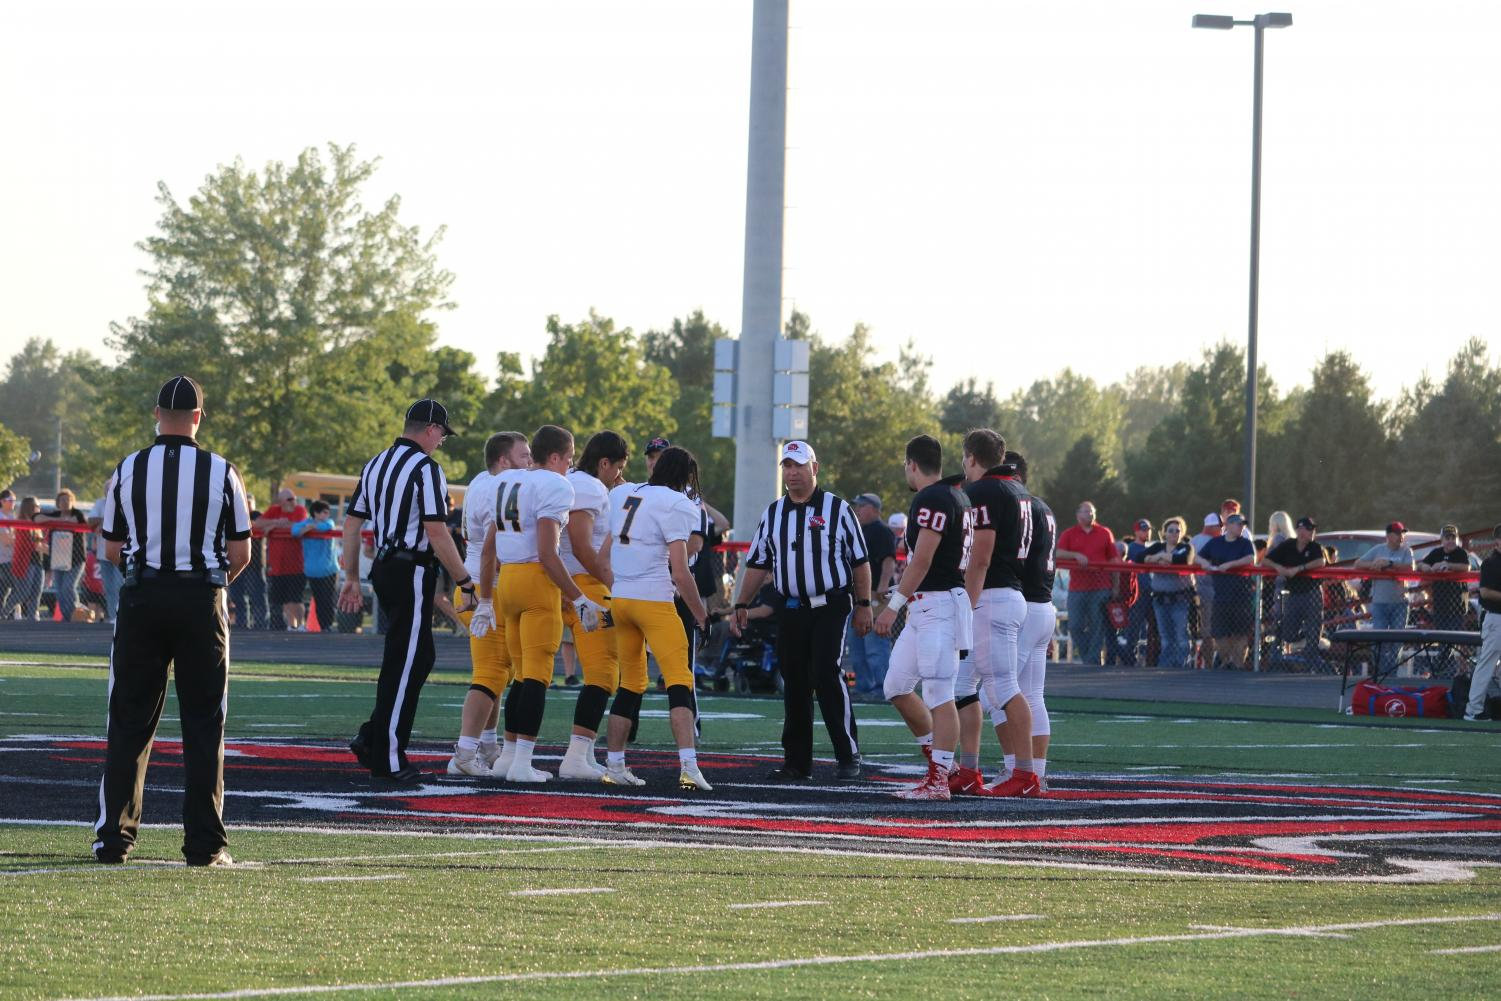 The 2019 football captains head to midfield for the coin toss against Creston. The captains are seniors Sage Archibald, Cale Roller, and Tyler Moen, and junior Colin Mullenix.